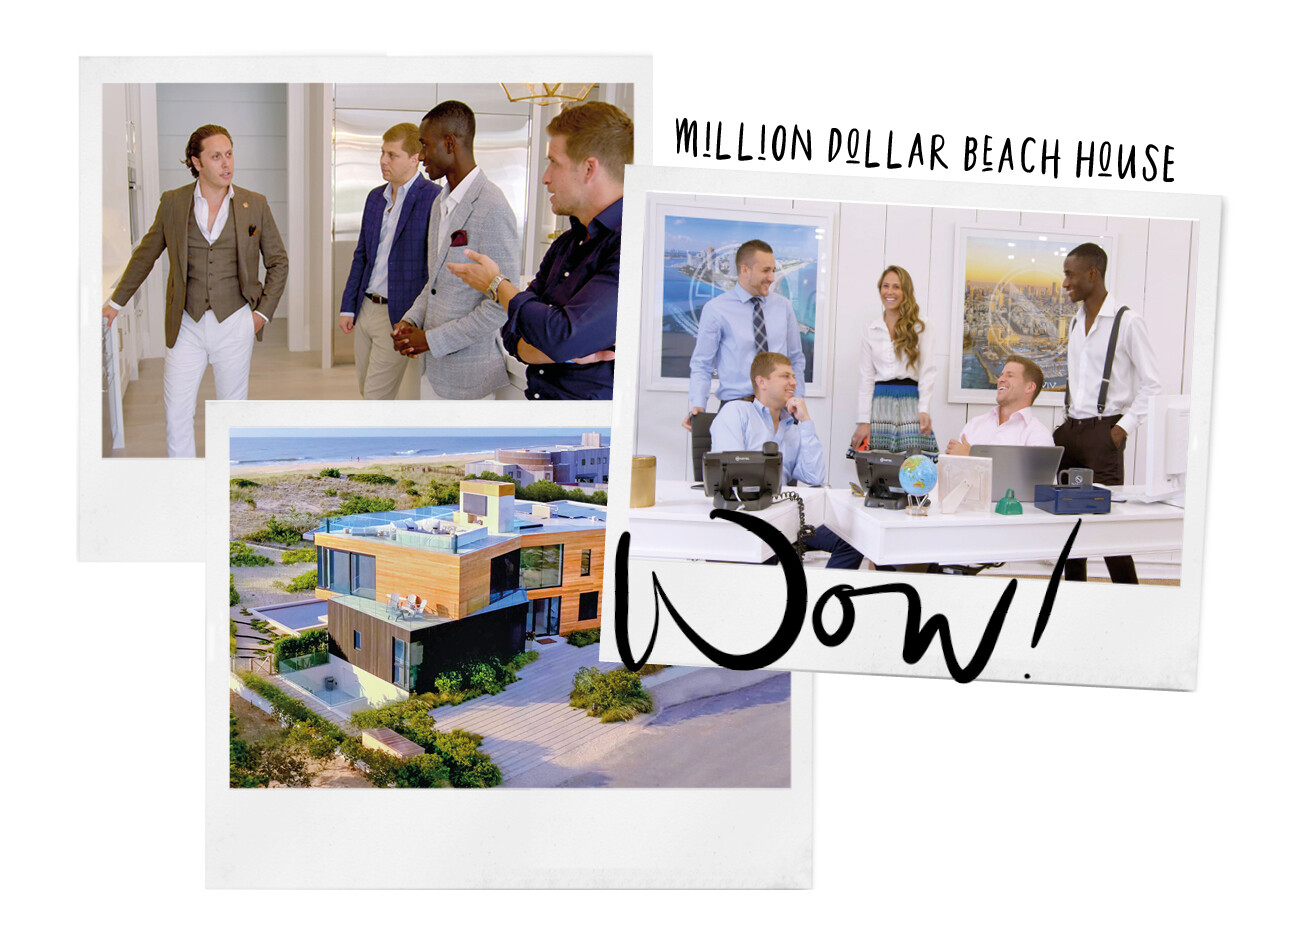 Million dollar beach houses-netflix